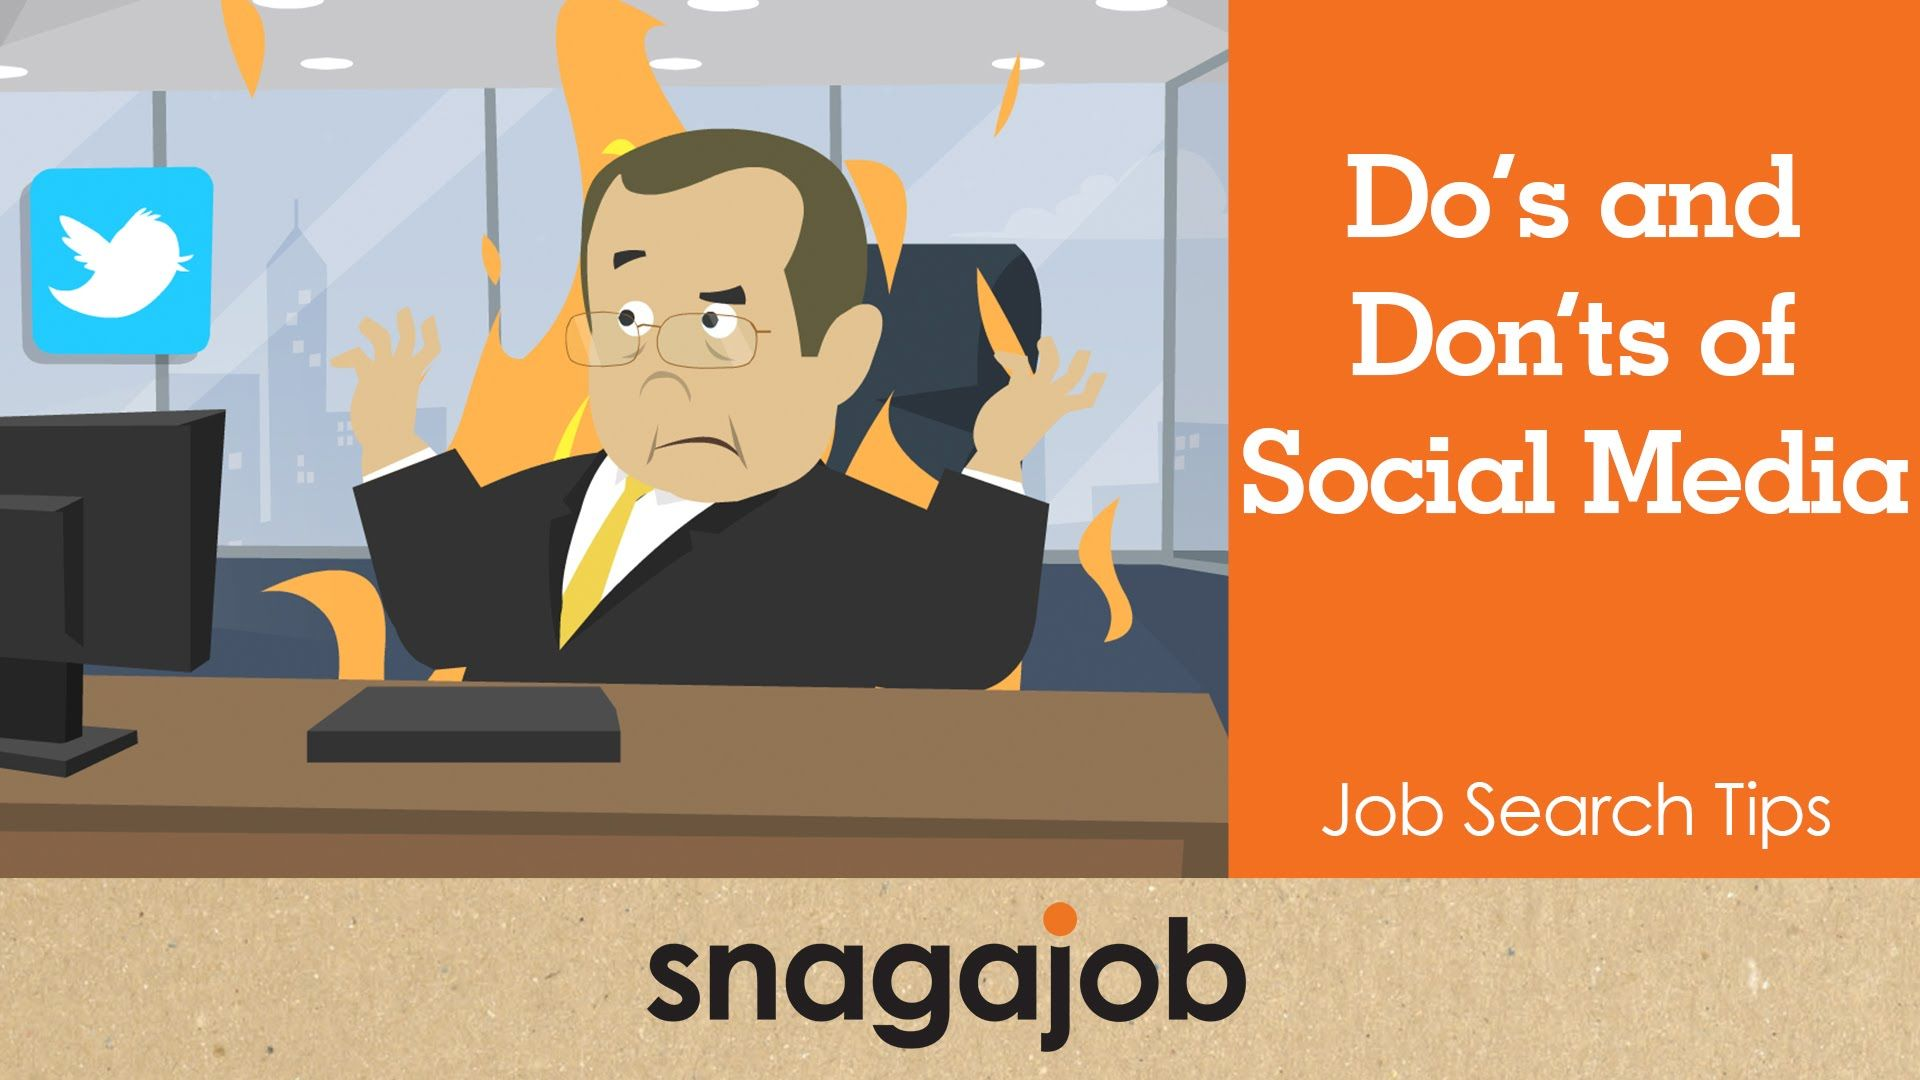 This Article Gives 10 Job Search Tricks Through The Use Of Social Media And  Apps, Giving Your Job Search A Serious Boost | Pinterest